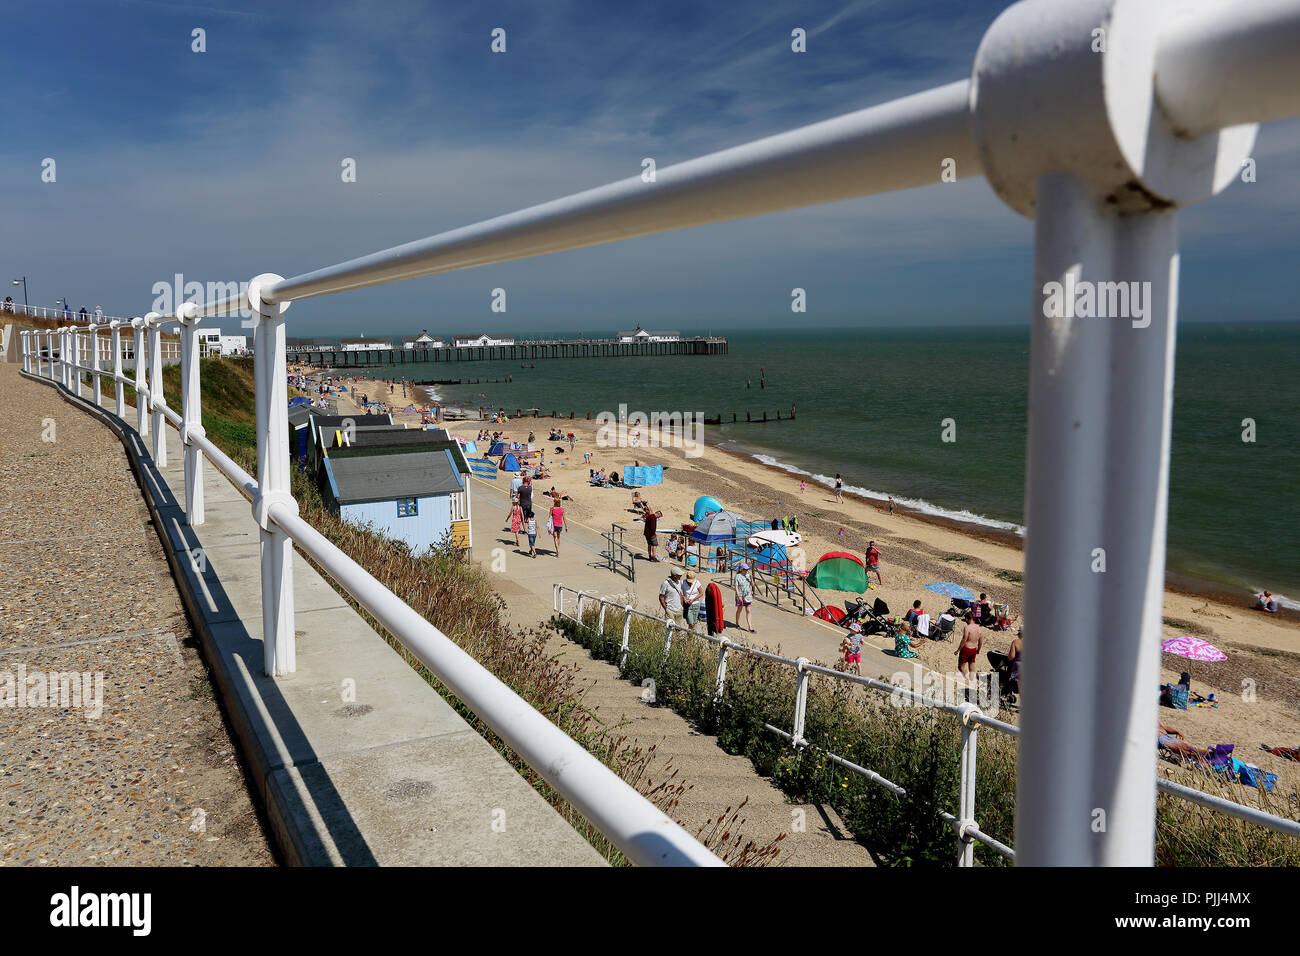 The beach and North Sea seen from the promenade at Southwold, Suffolk, UK - Stock Image